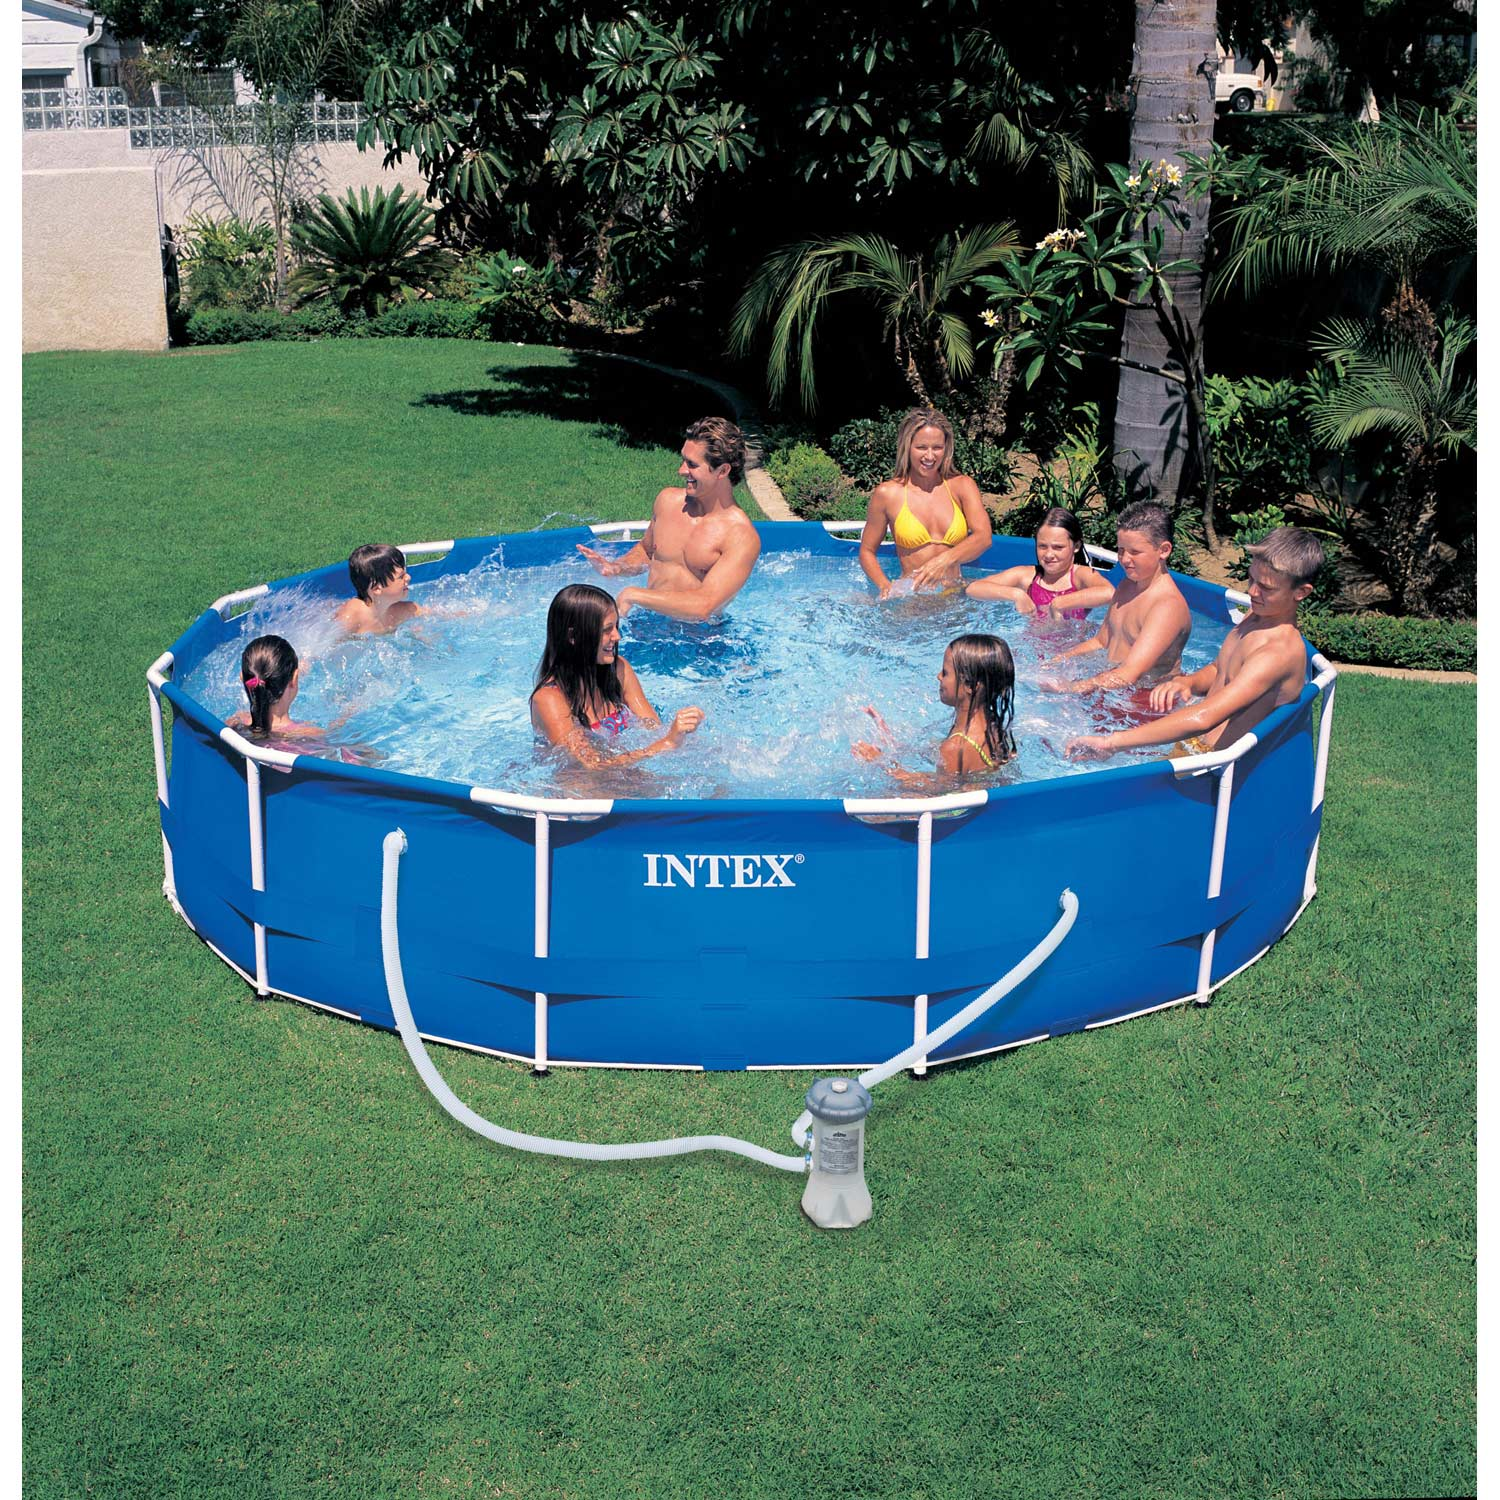 Piscine hors sol autoportante tubulaire m tal frame intex for Piscine dans sol